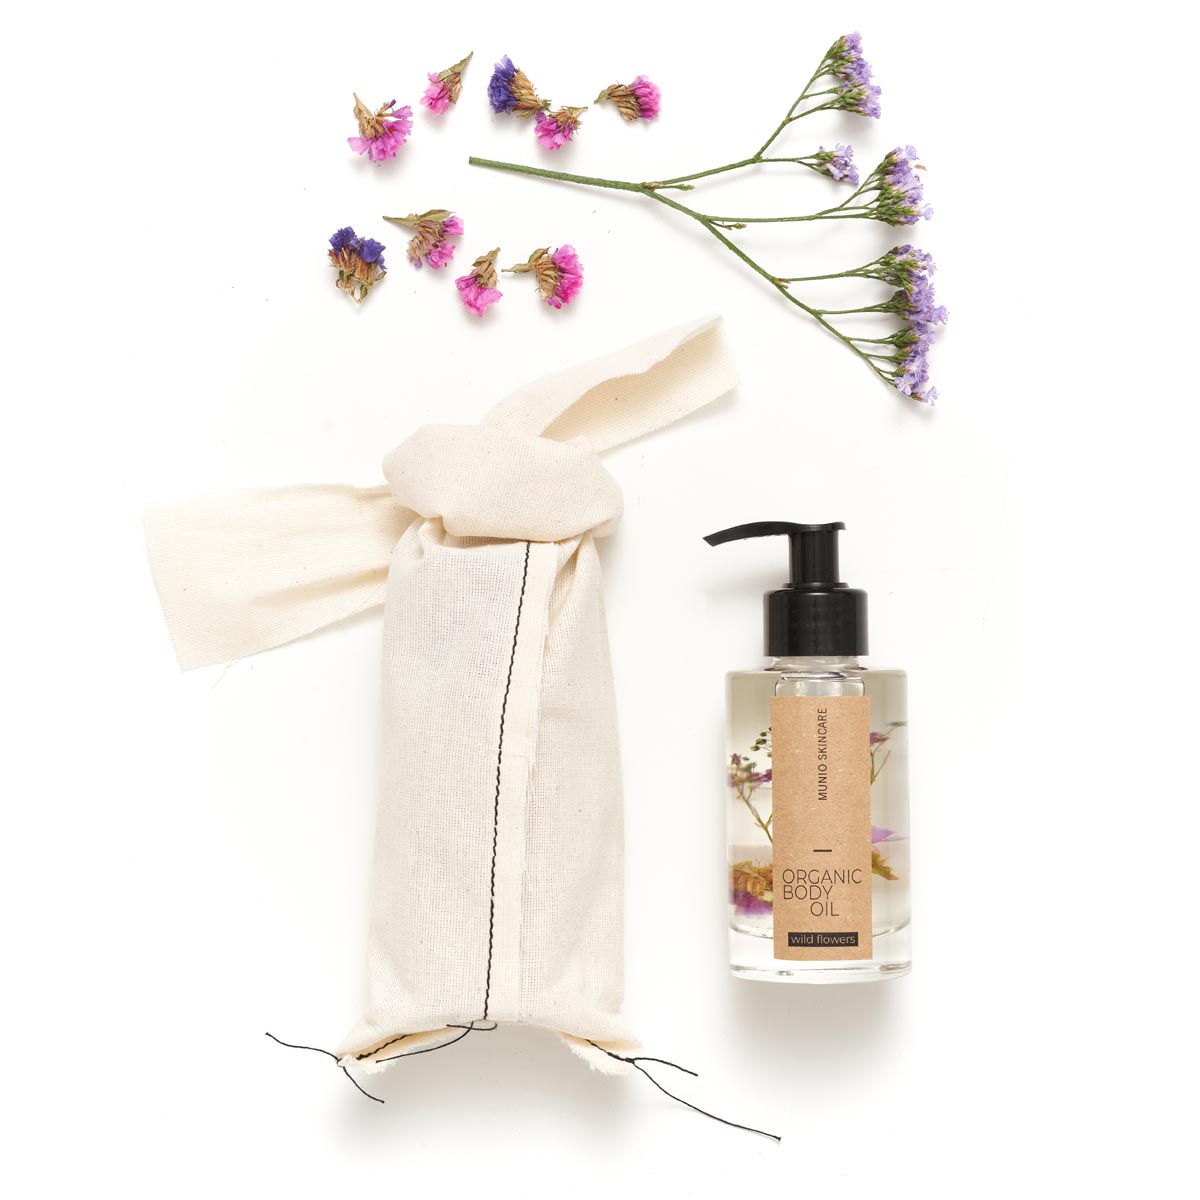 WILD FLOWERS ORGANIC BODY OIL